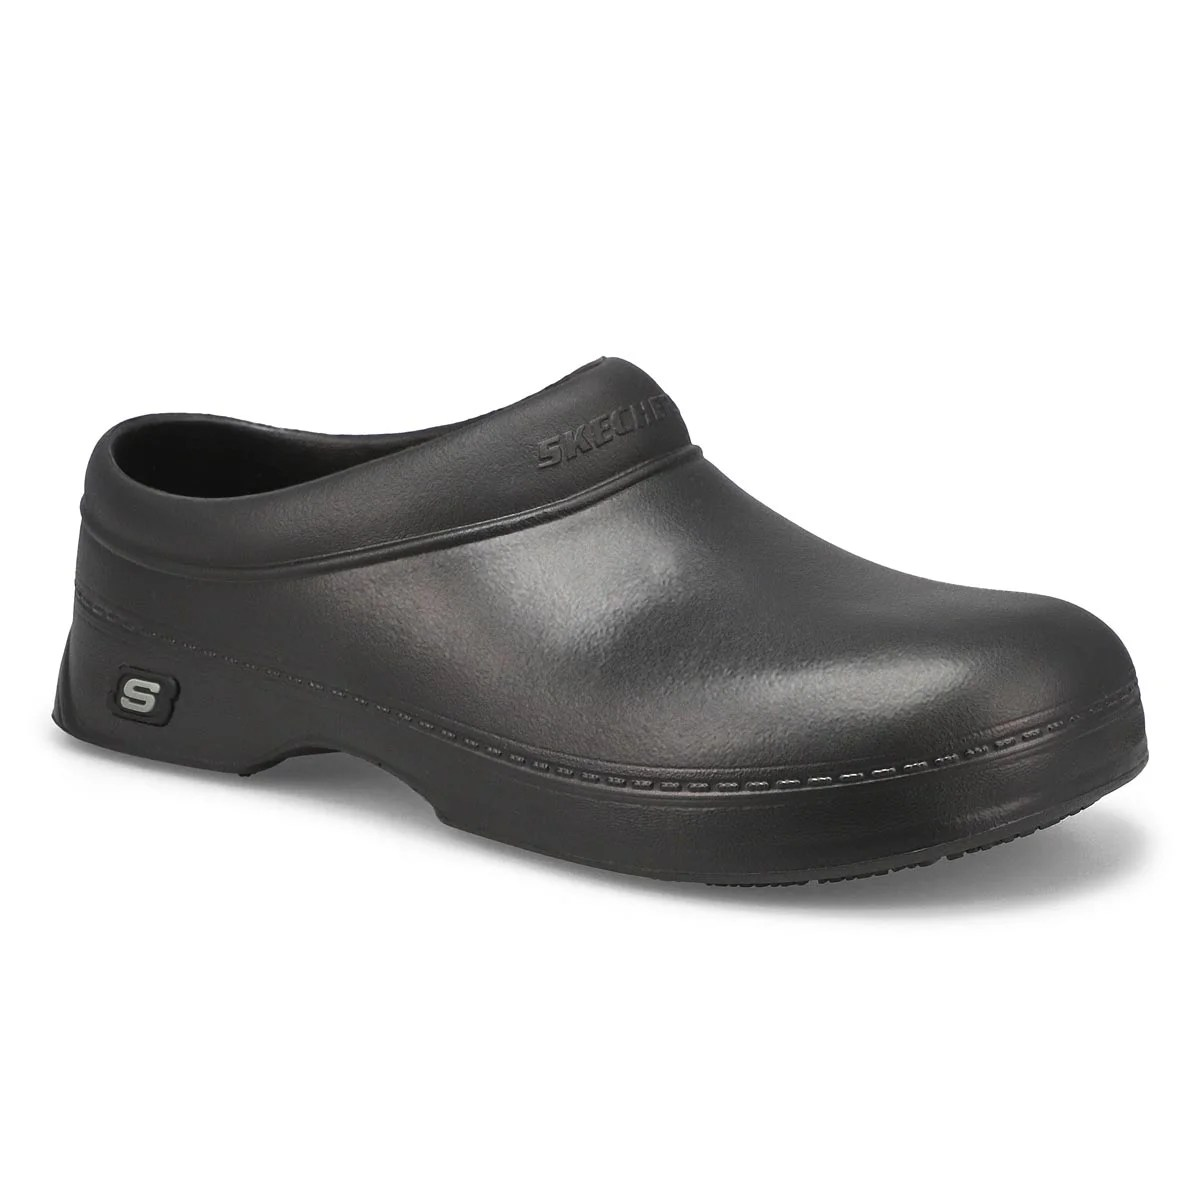 Black Non Skid Work Shoes